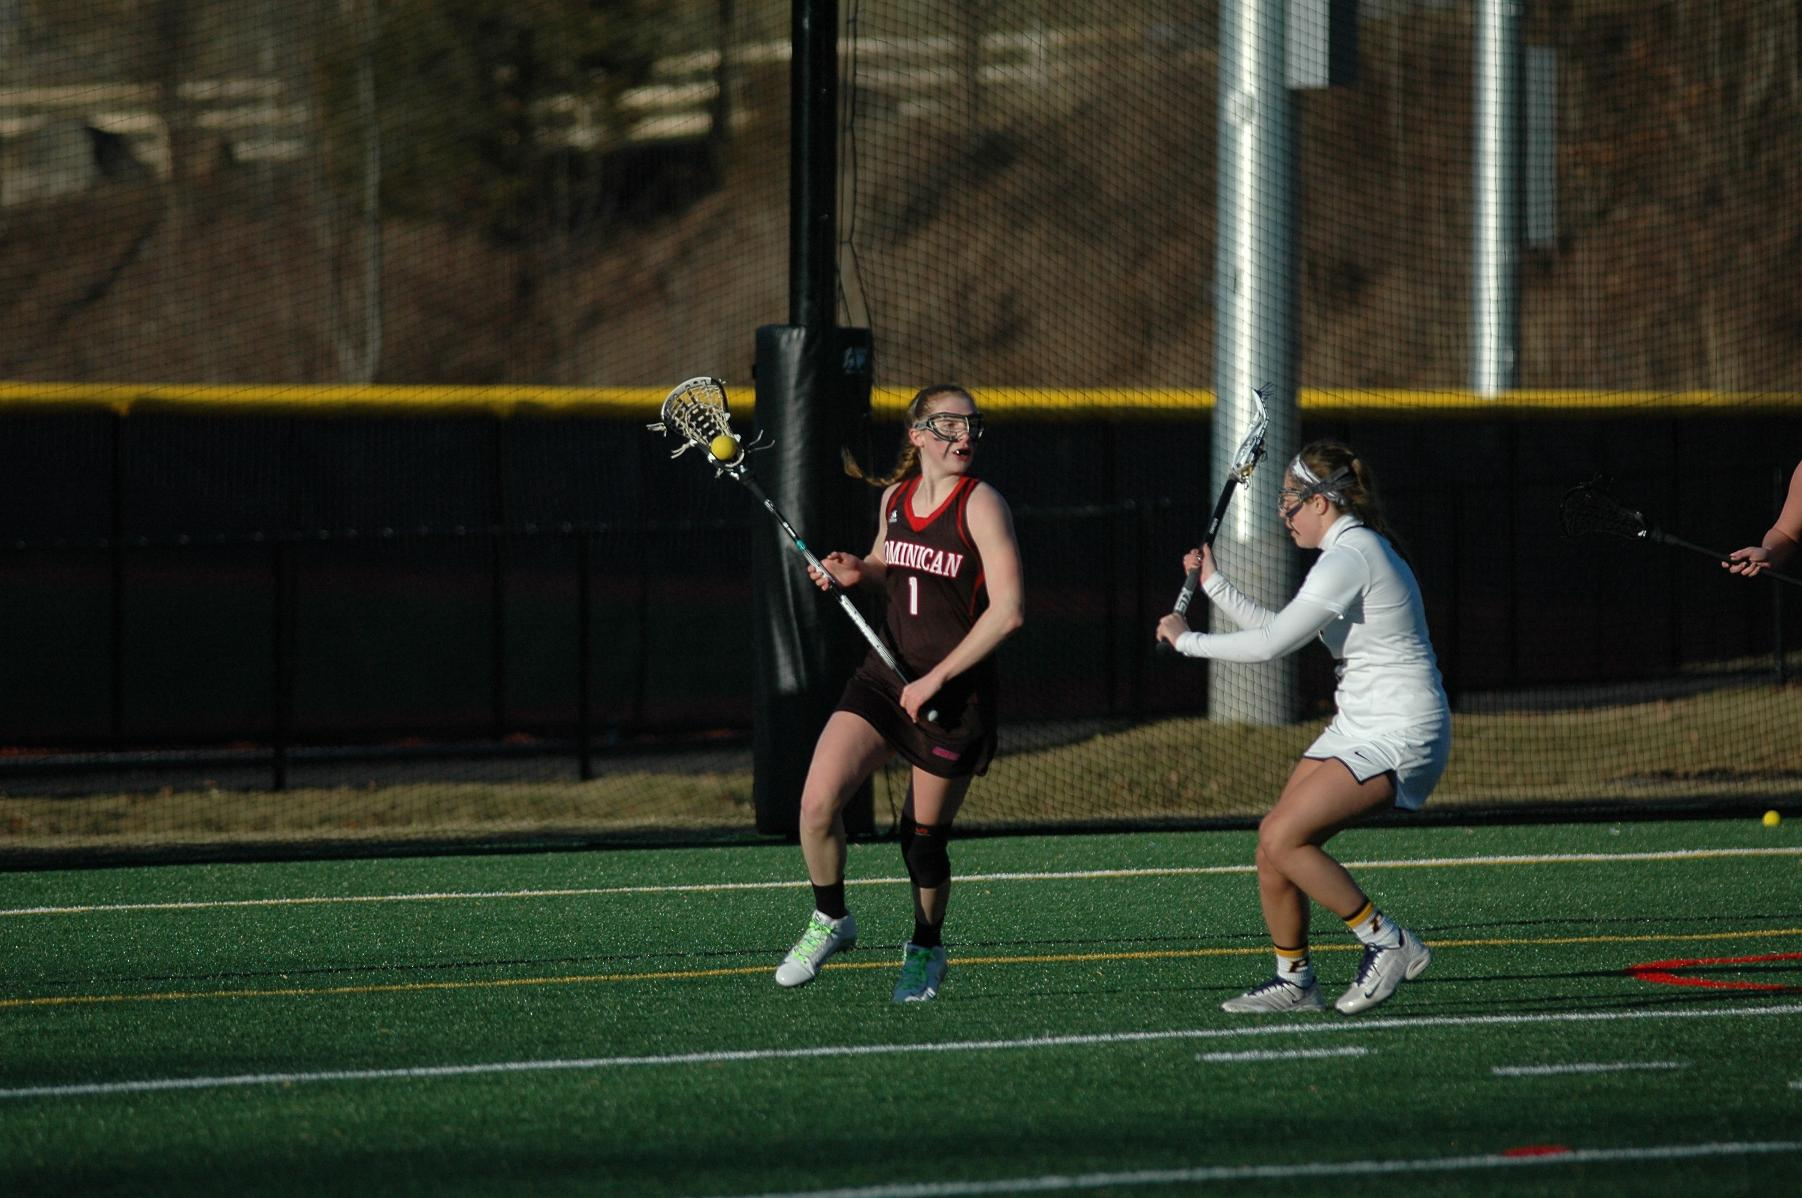 WOMEN'S LACROSSE REMAIN UNDEFEATED IN CONFERENCE PLAY